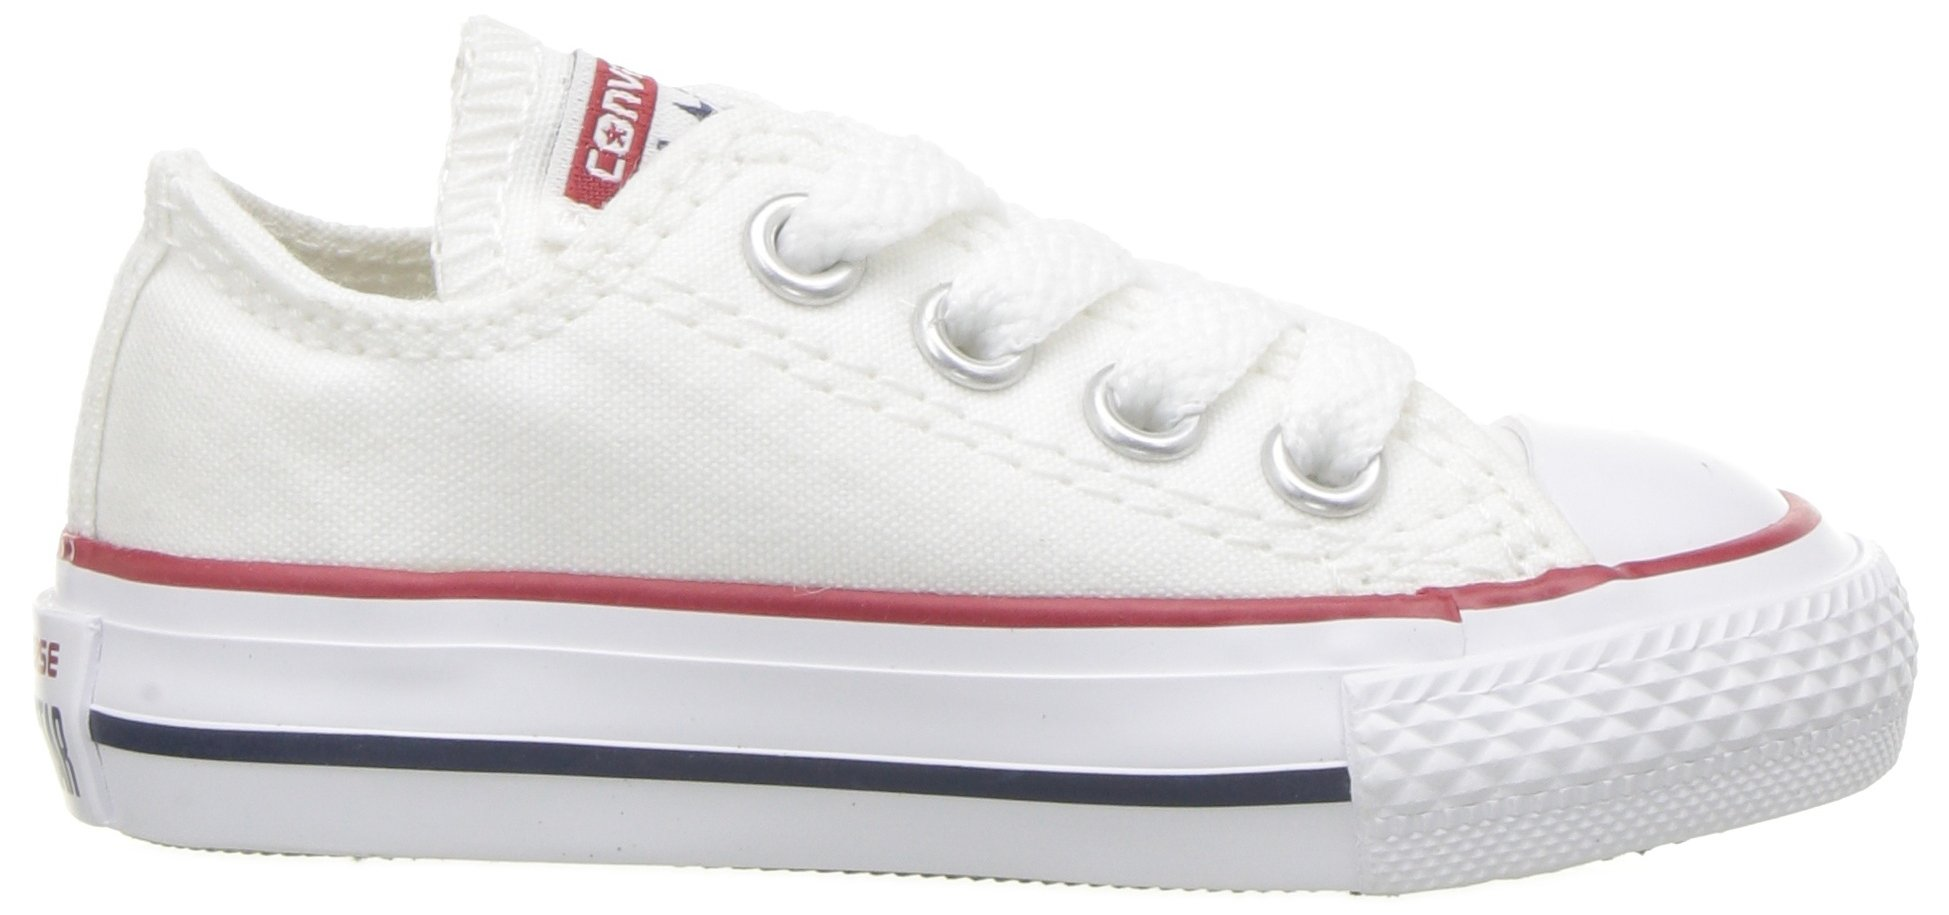 Converse Chuck Taylor All Star Canvas Low Top Sneaker, Optical White, 13.5 M US Little Kid by Converse (Image #11)